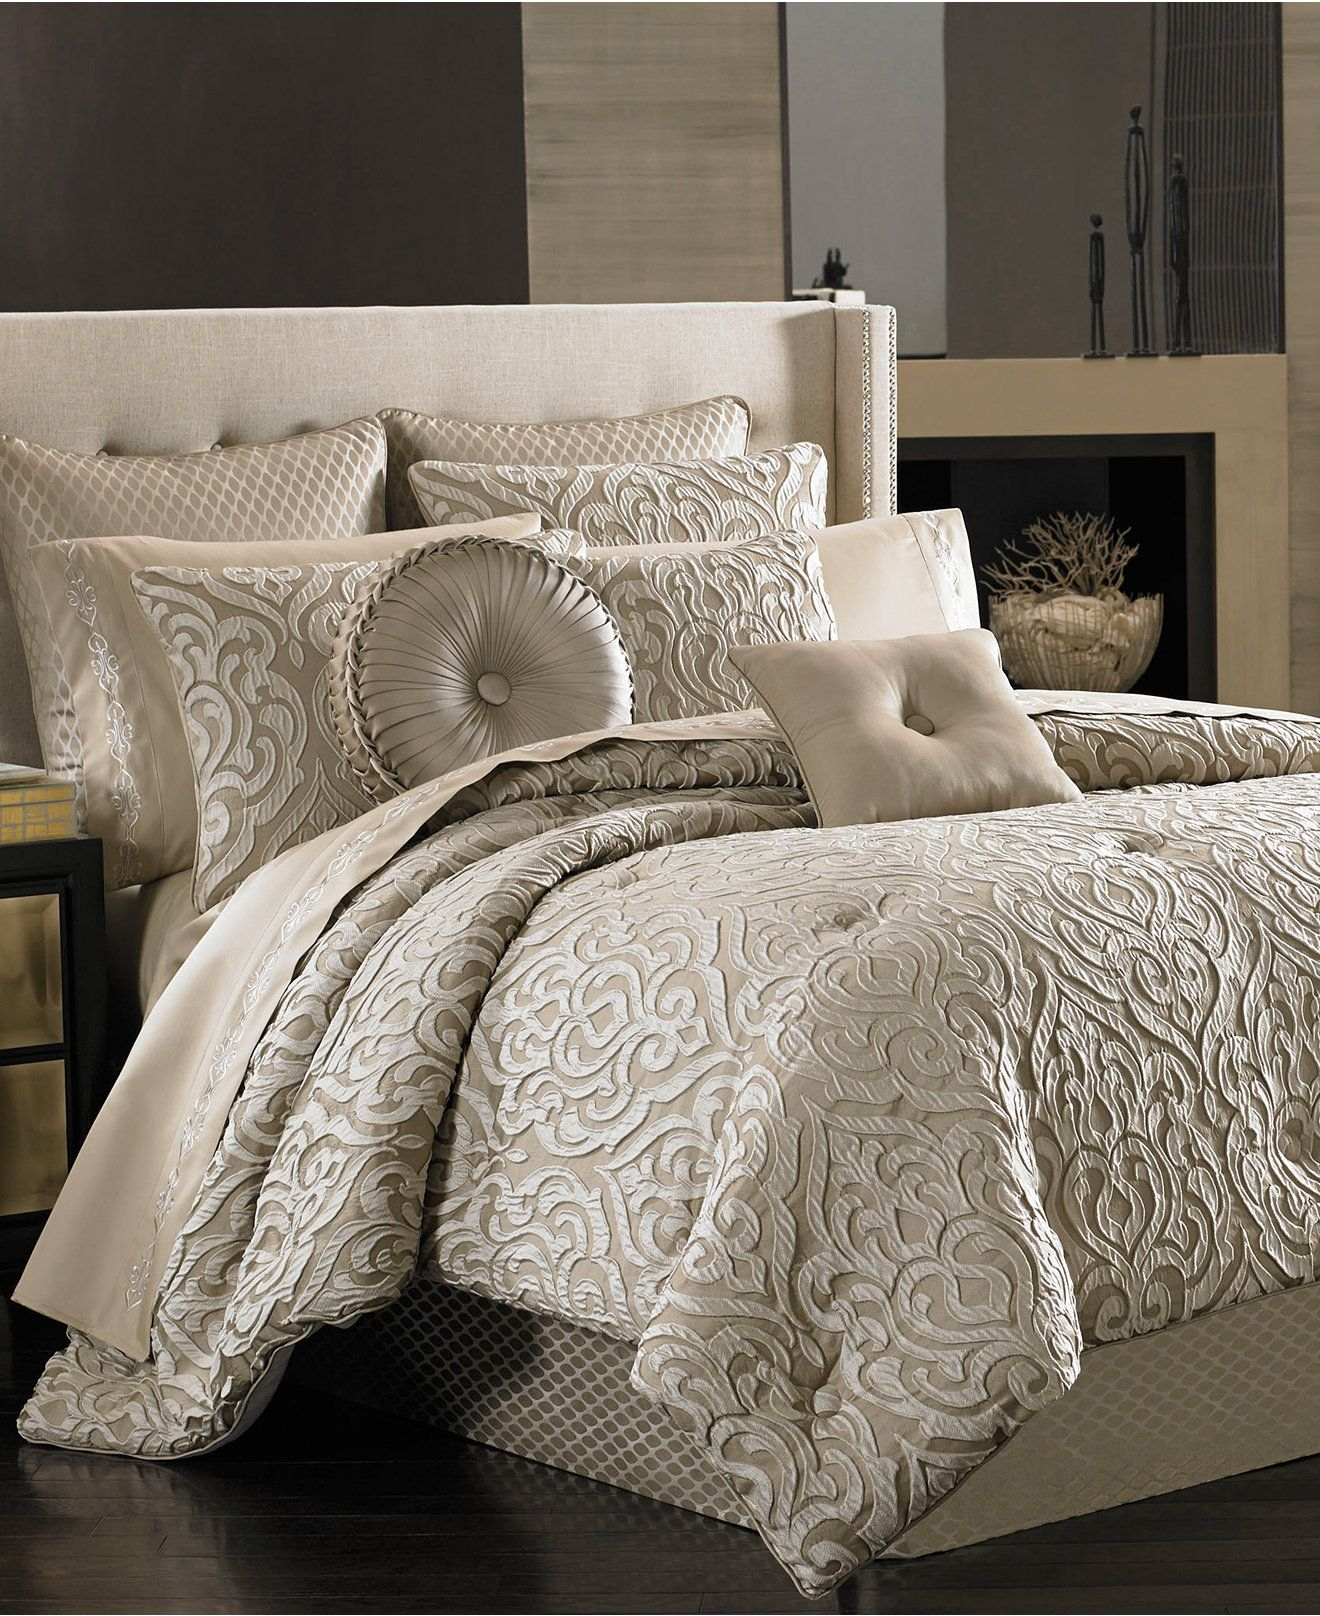 Astoria 4 Pc Bedding Collection With Images King Comforter